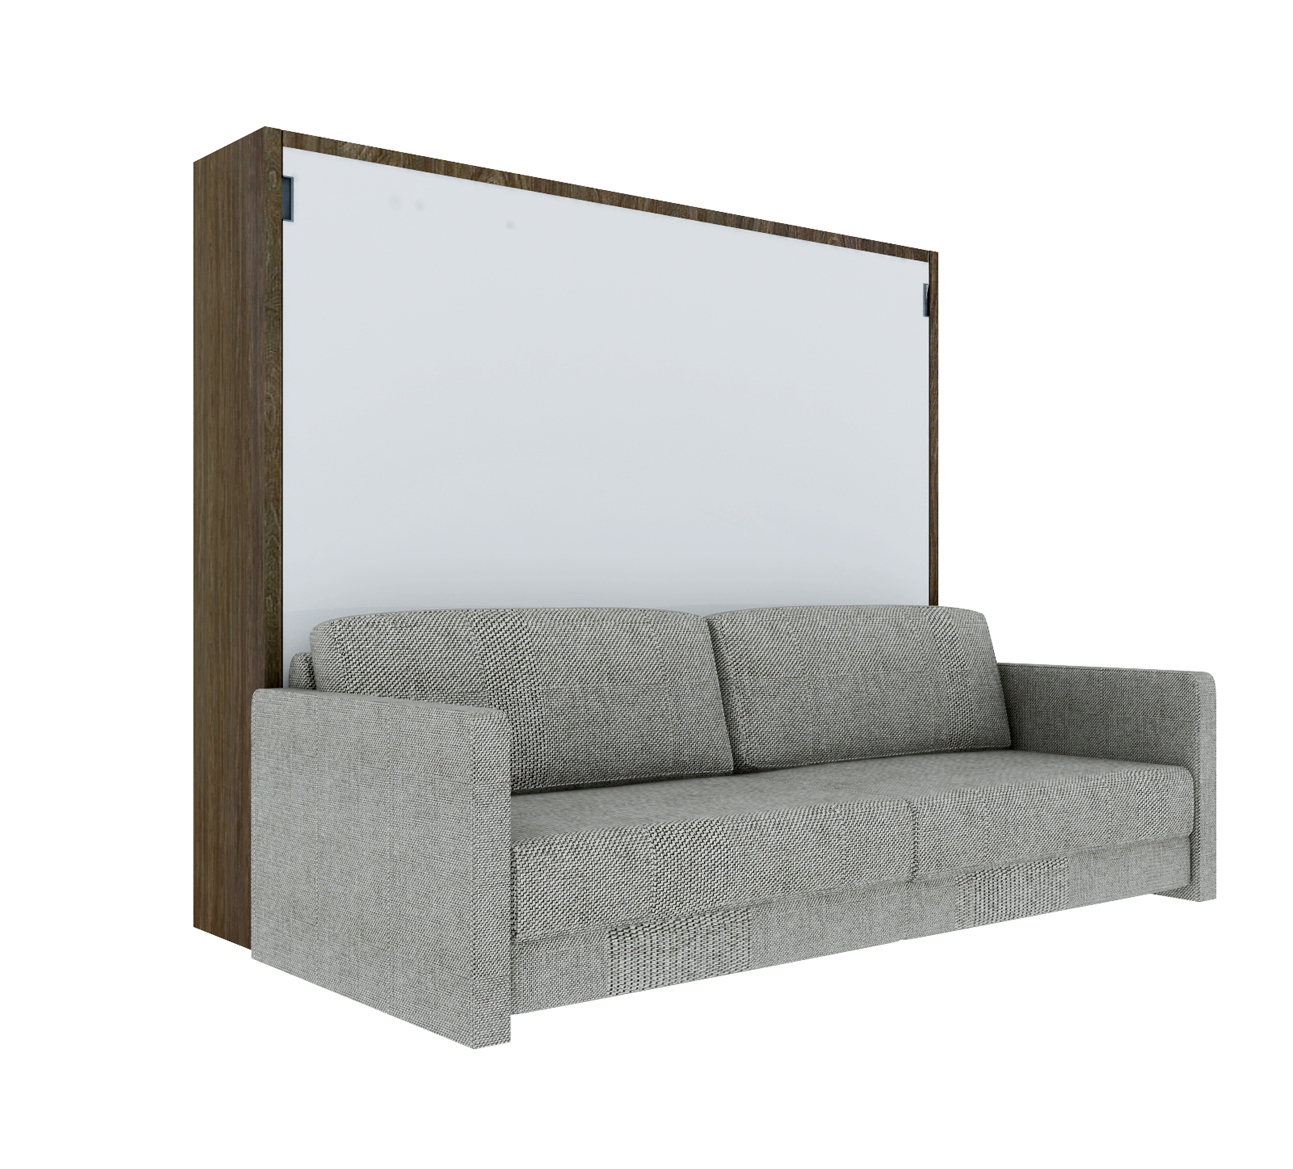 Pat Multifunctional – SmartBed O Sofa